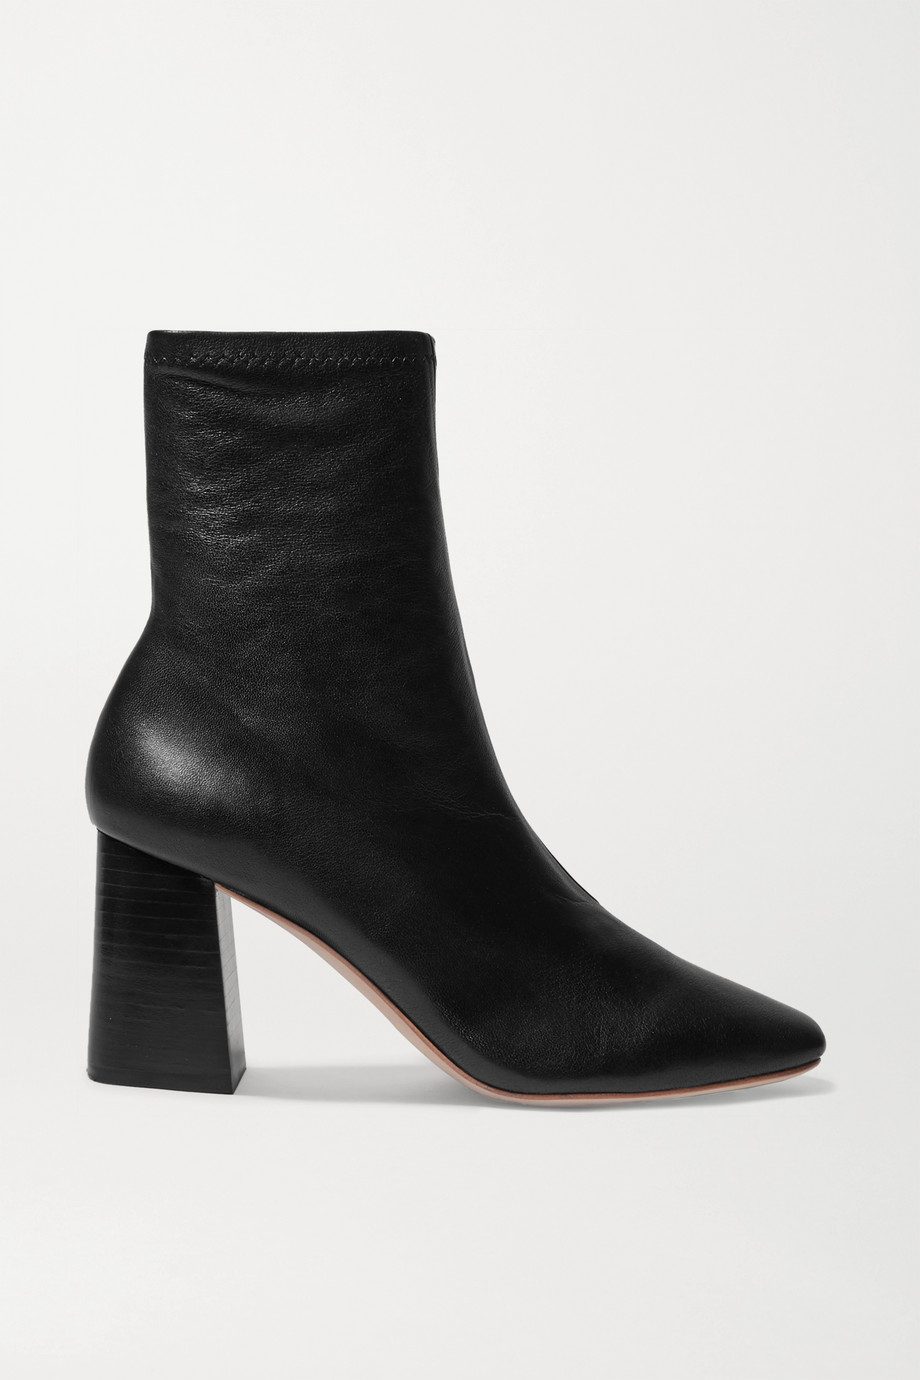 Loeffler Randall Elise leather ankle boots